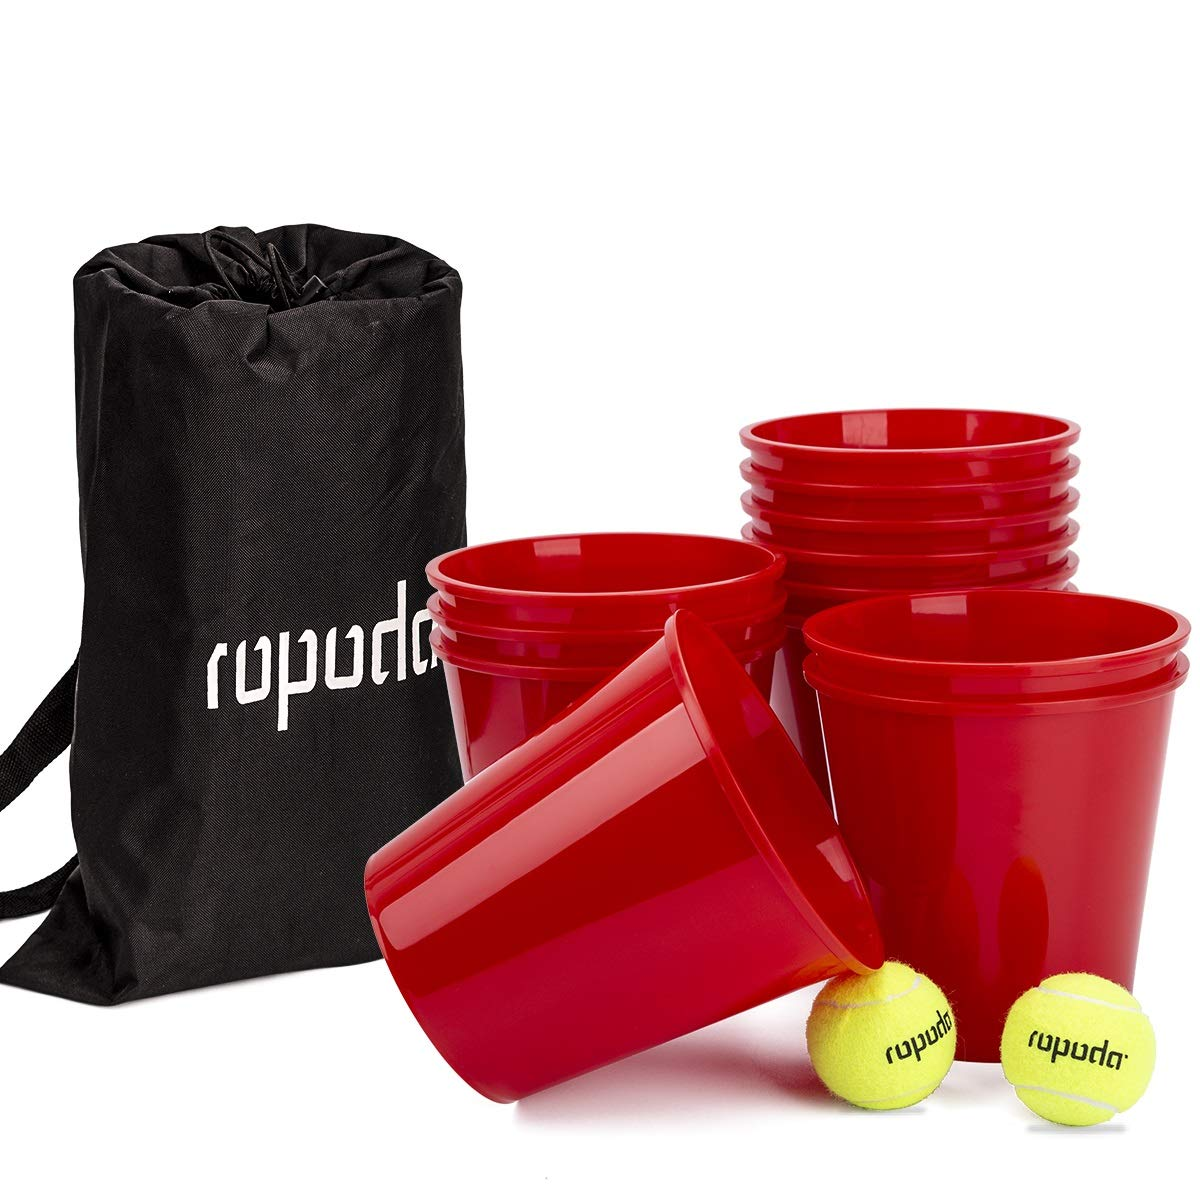 ROPODA Yard Pong - Giant Pong Game Set Outdoor for The Beach, Camping, Tailgating, Lawn and Backyard by ROPODA